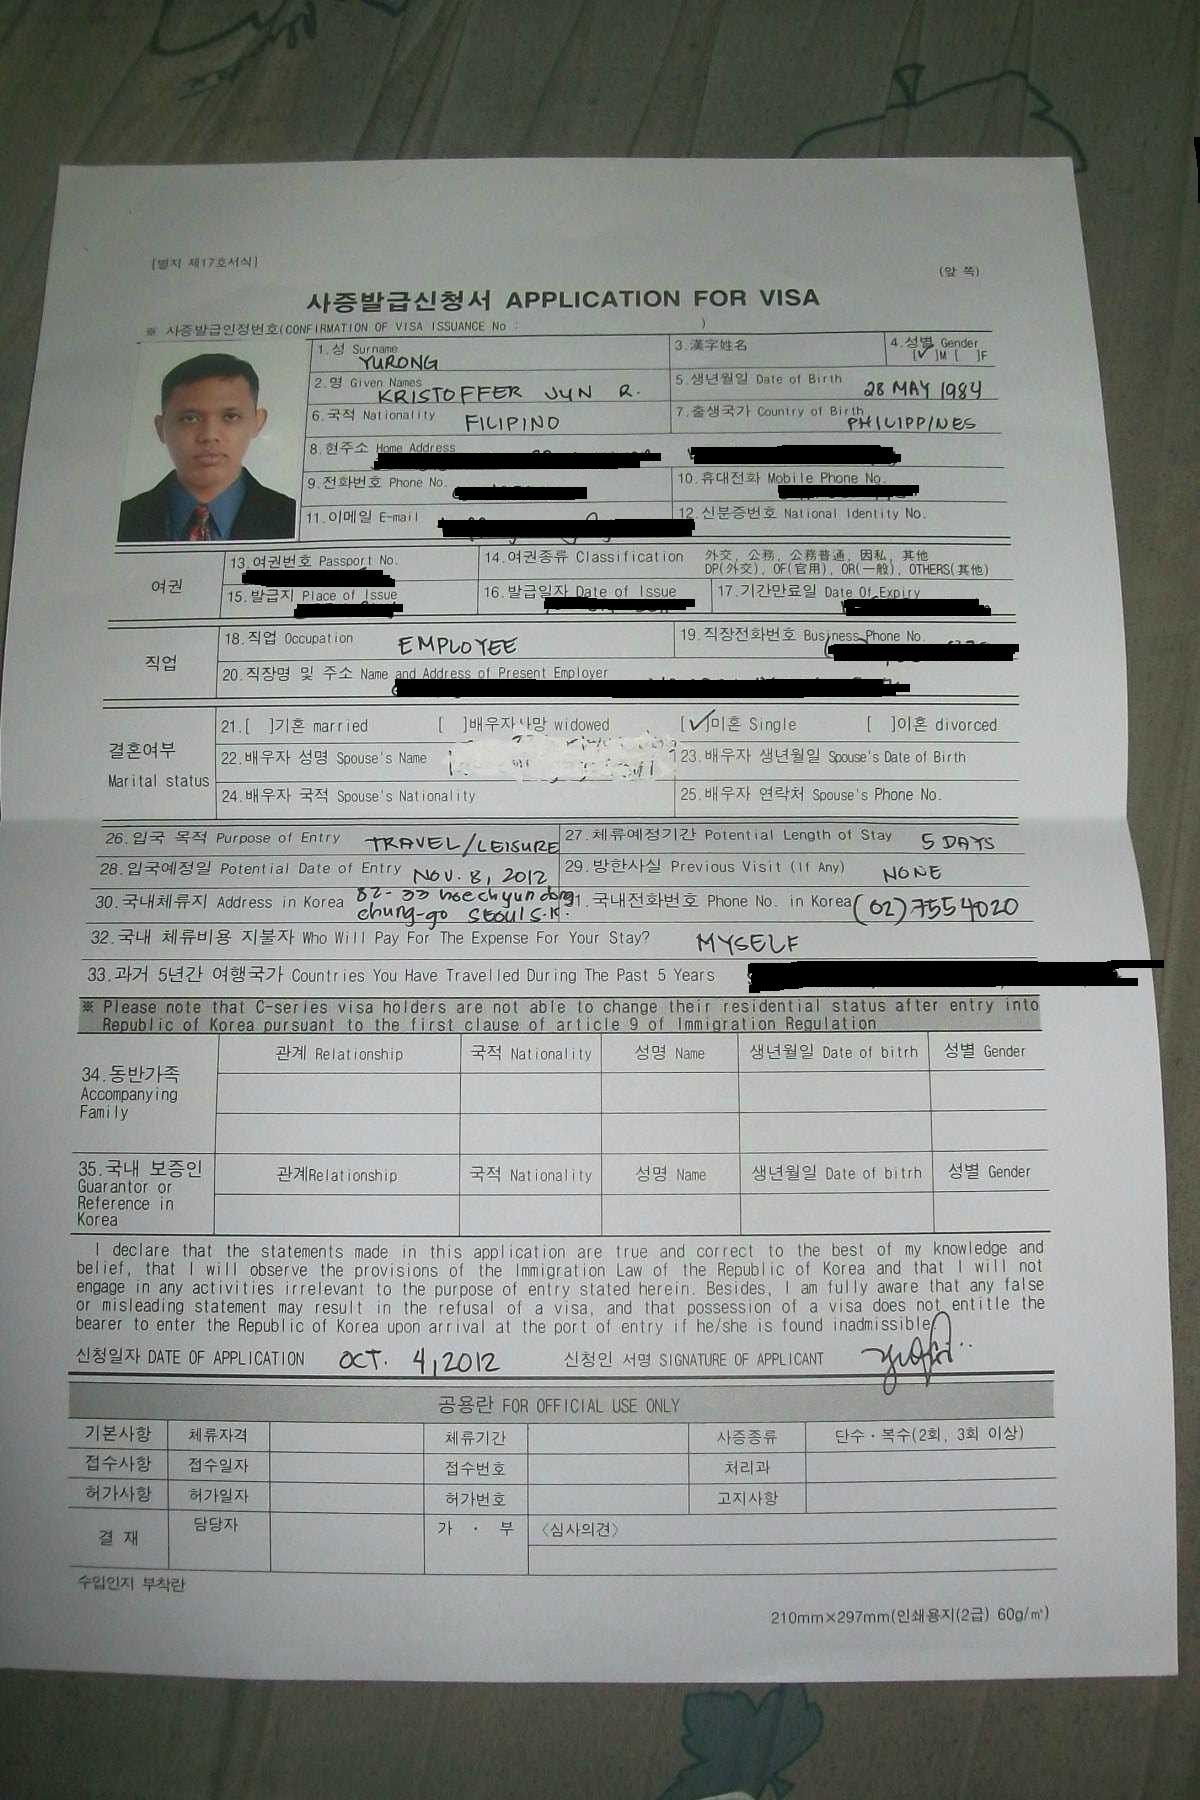 Korea Sparkling Visa Application For Filipinos Projectlakwatsa